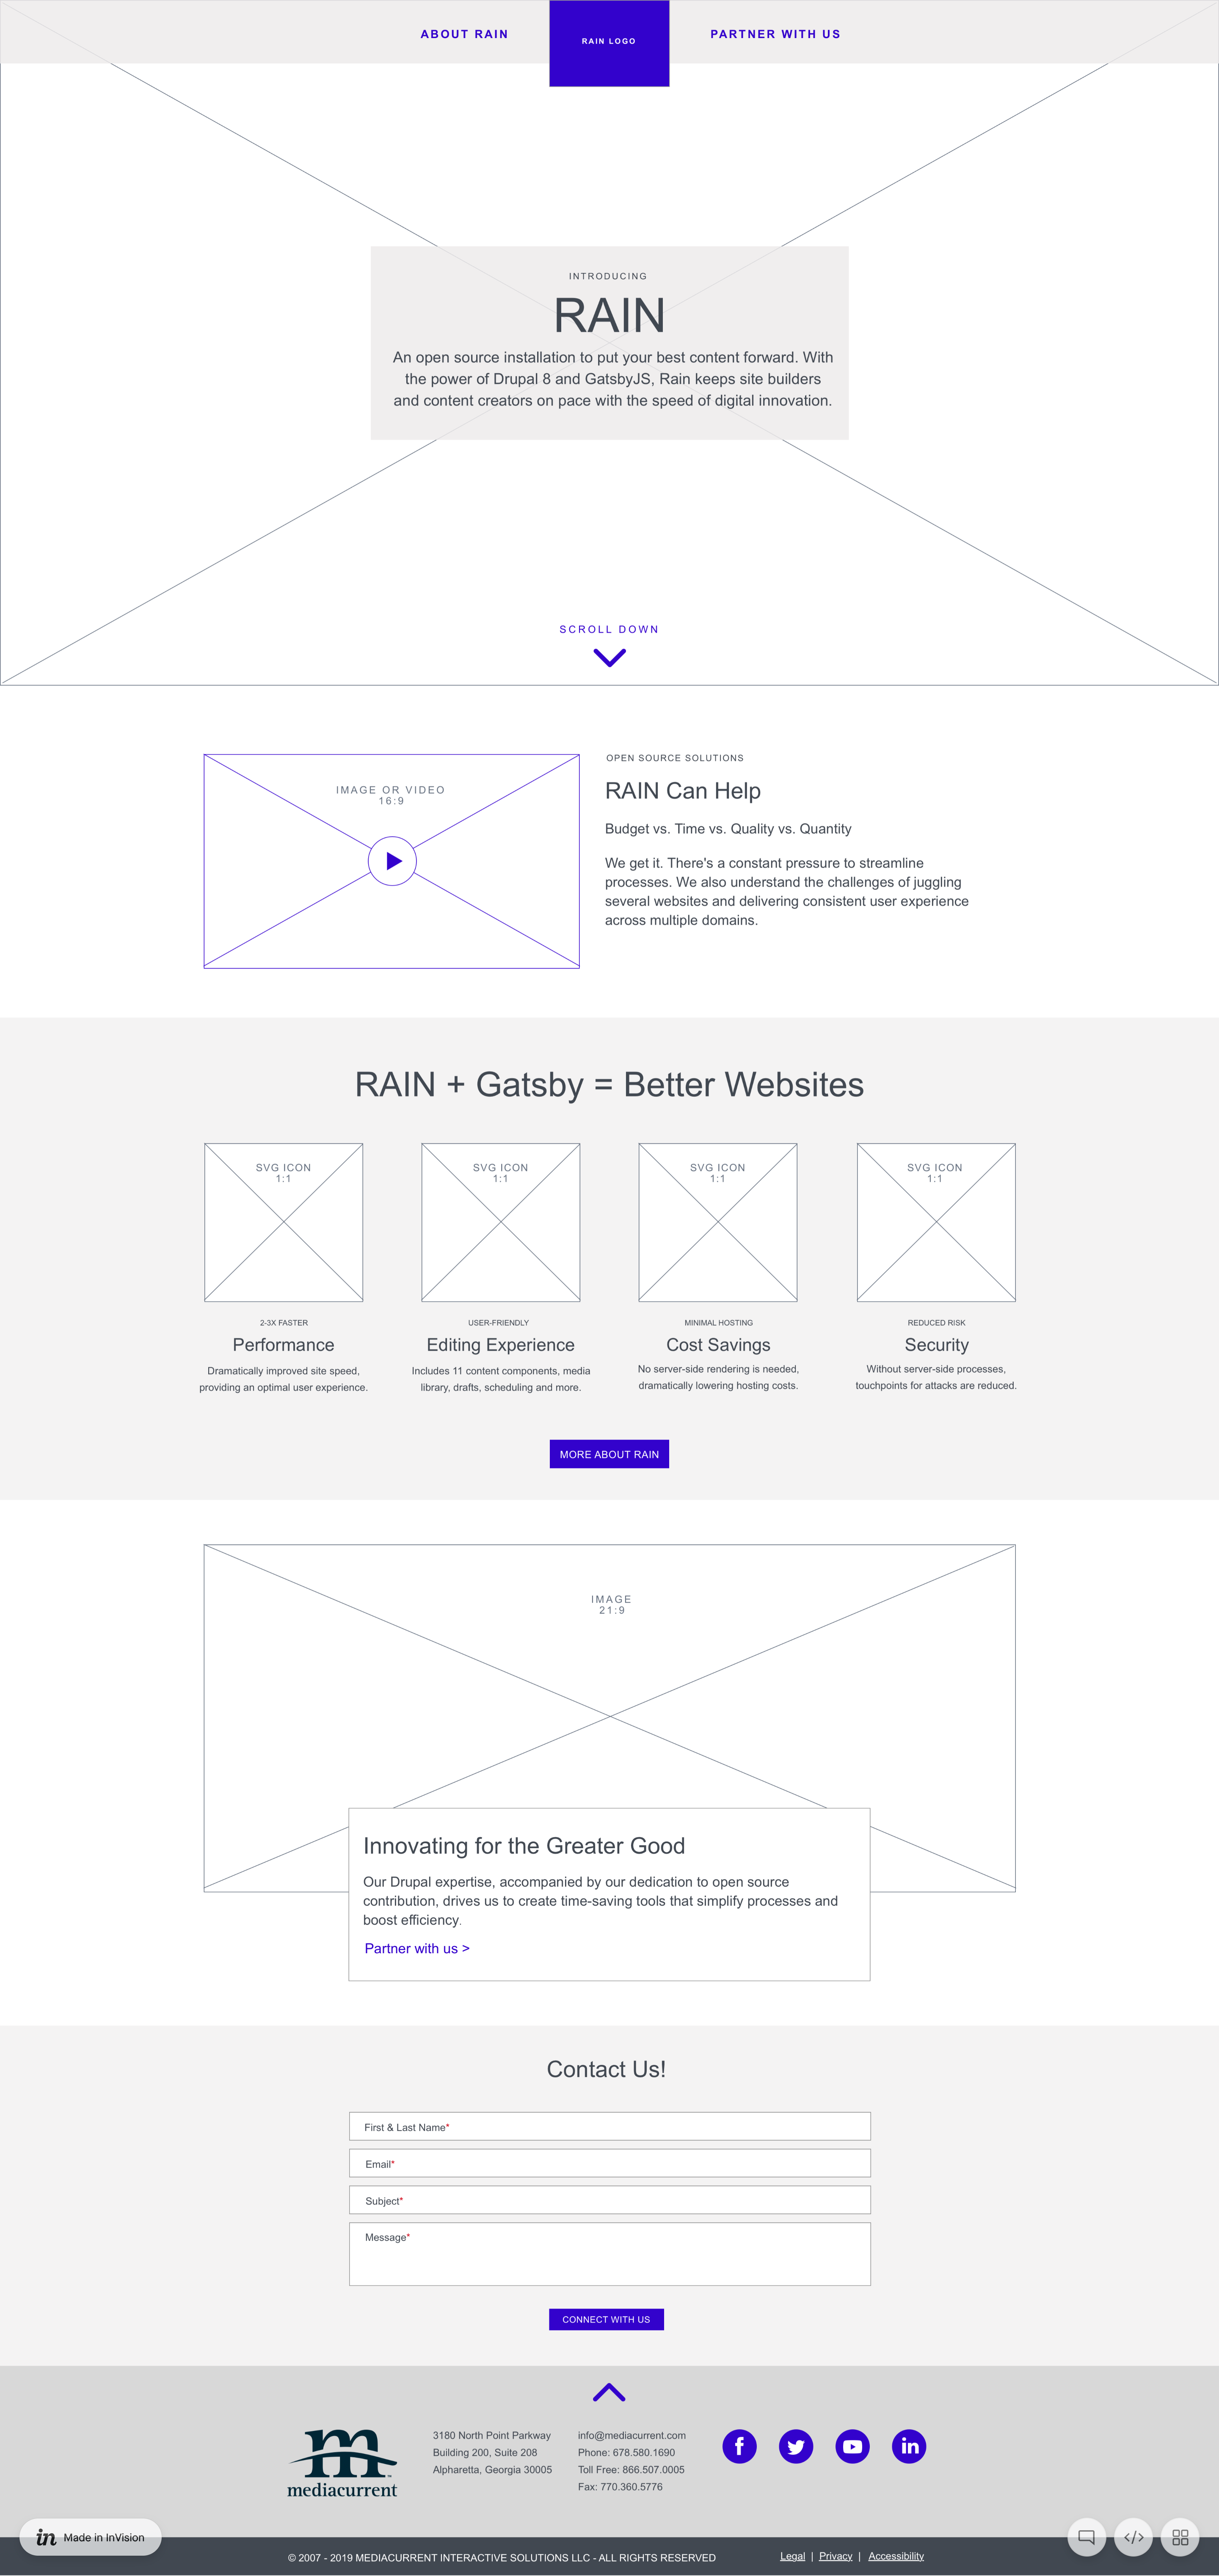 A screenshot of a low-fidelity wireframe of a website made using Rain